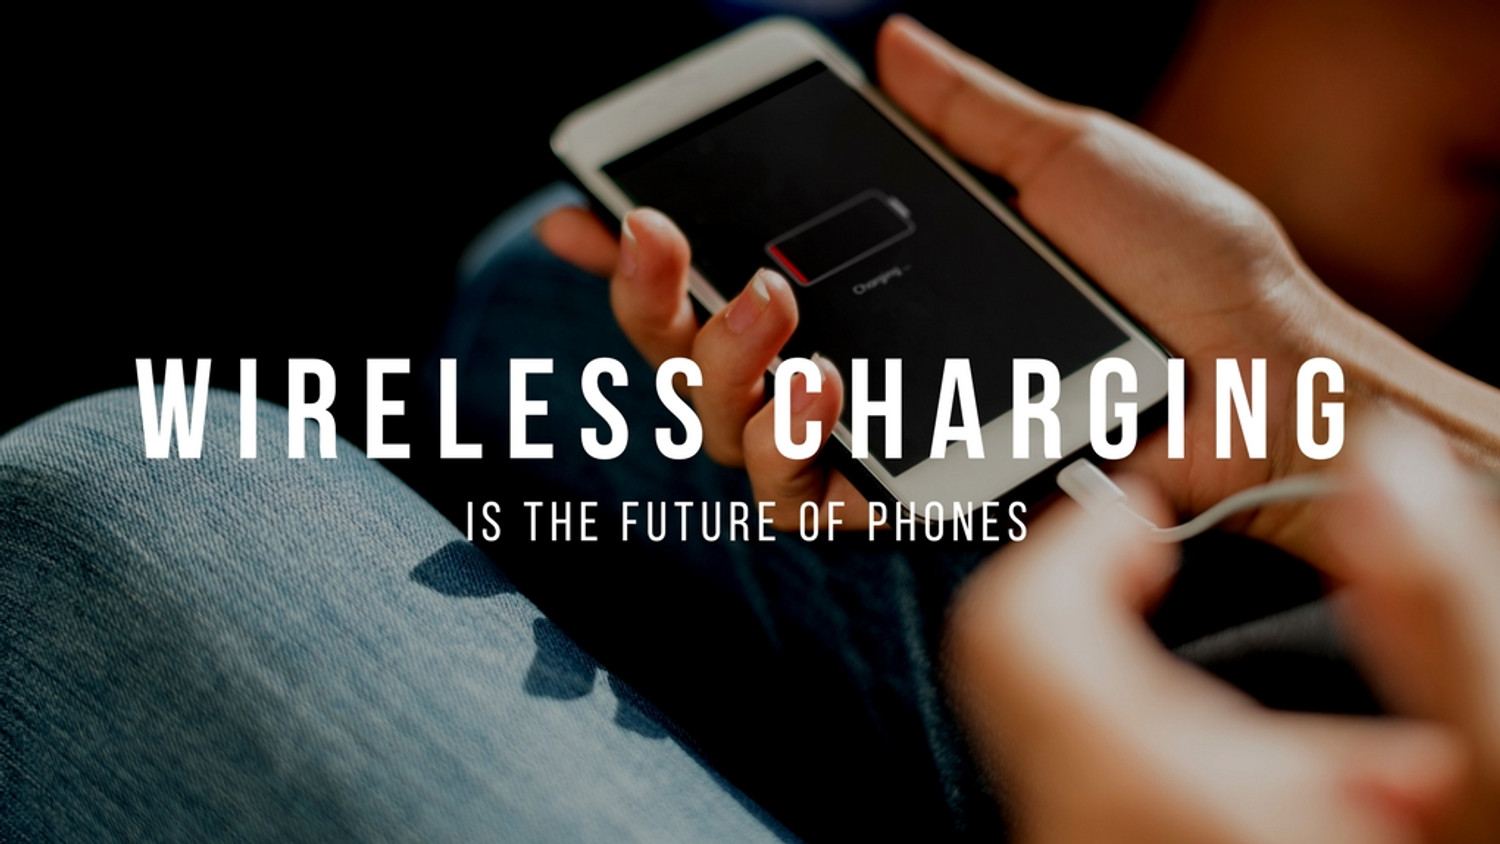 Wireless Charging is the Future of Phones